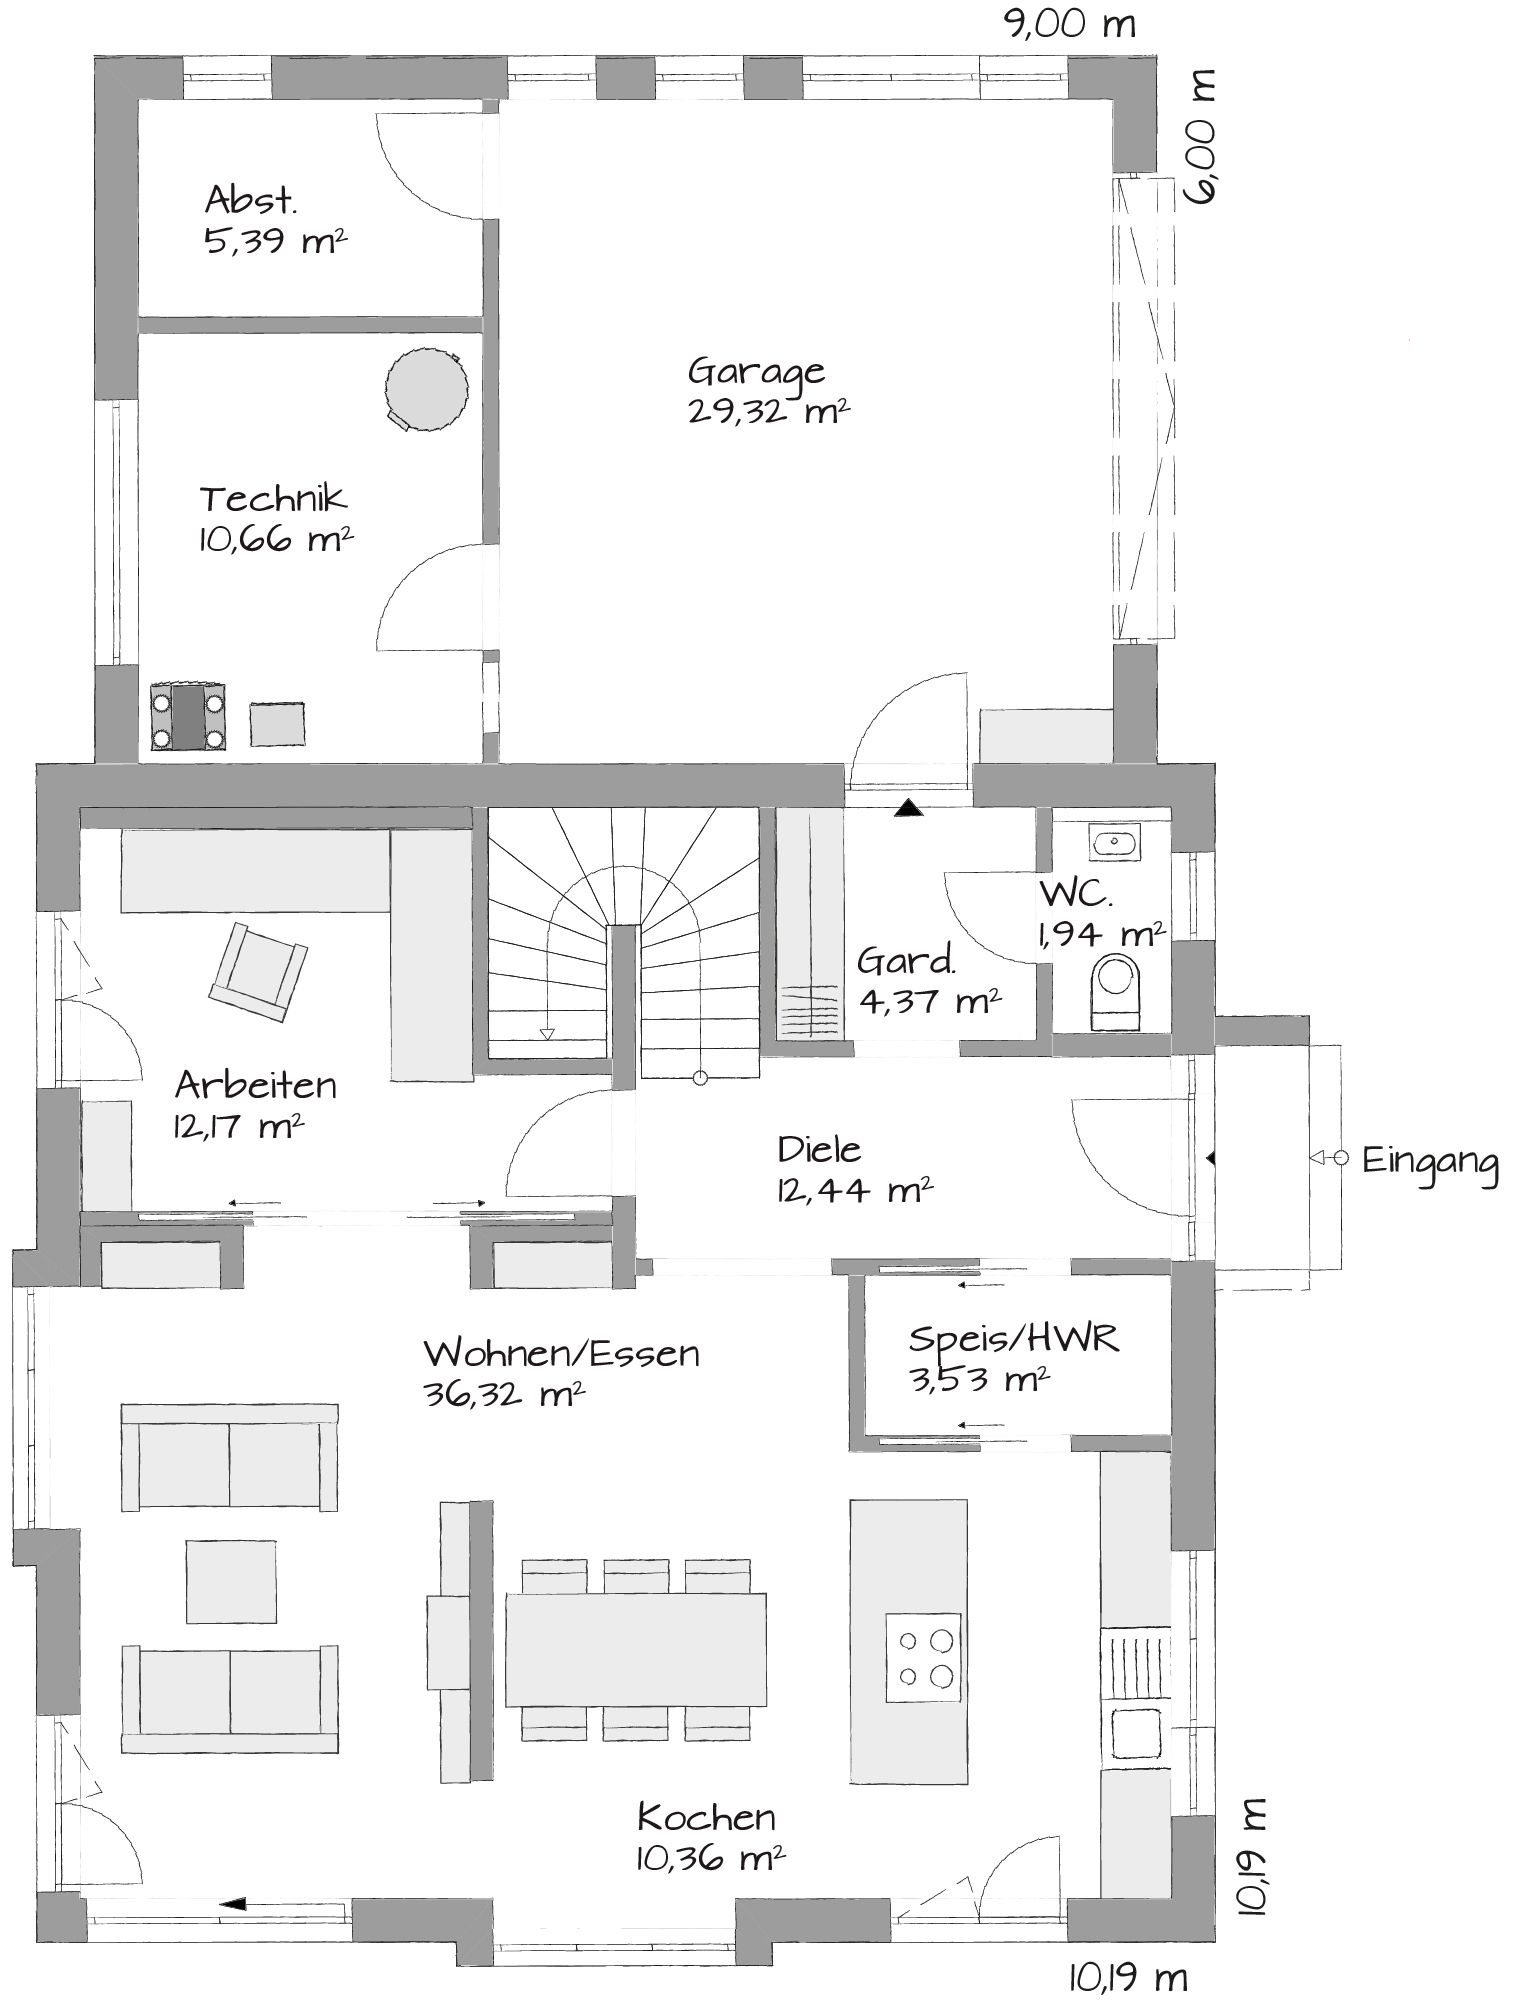 ^ 1000+ images about rchitektur on Pinterest House plans, rrow ...